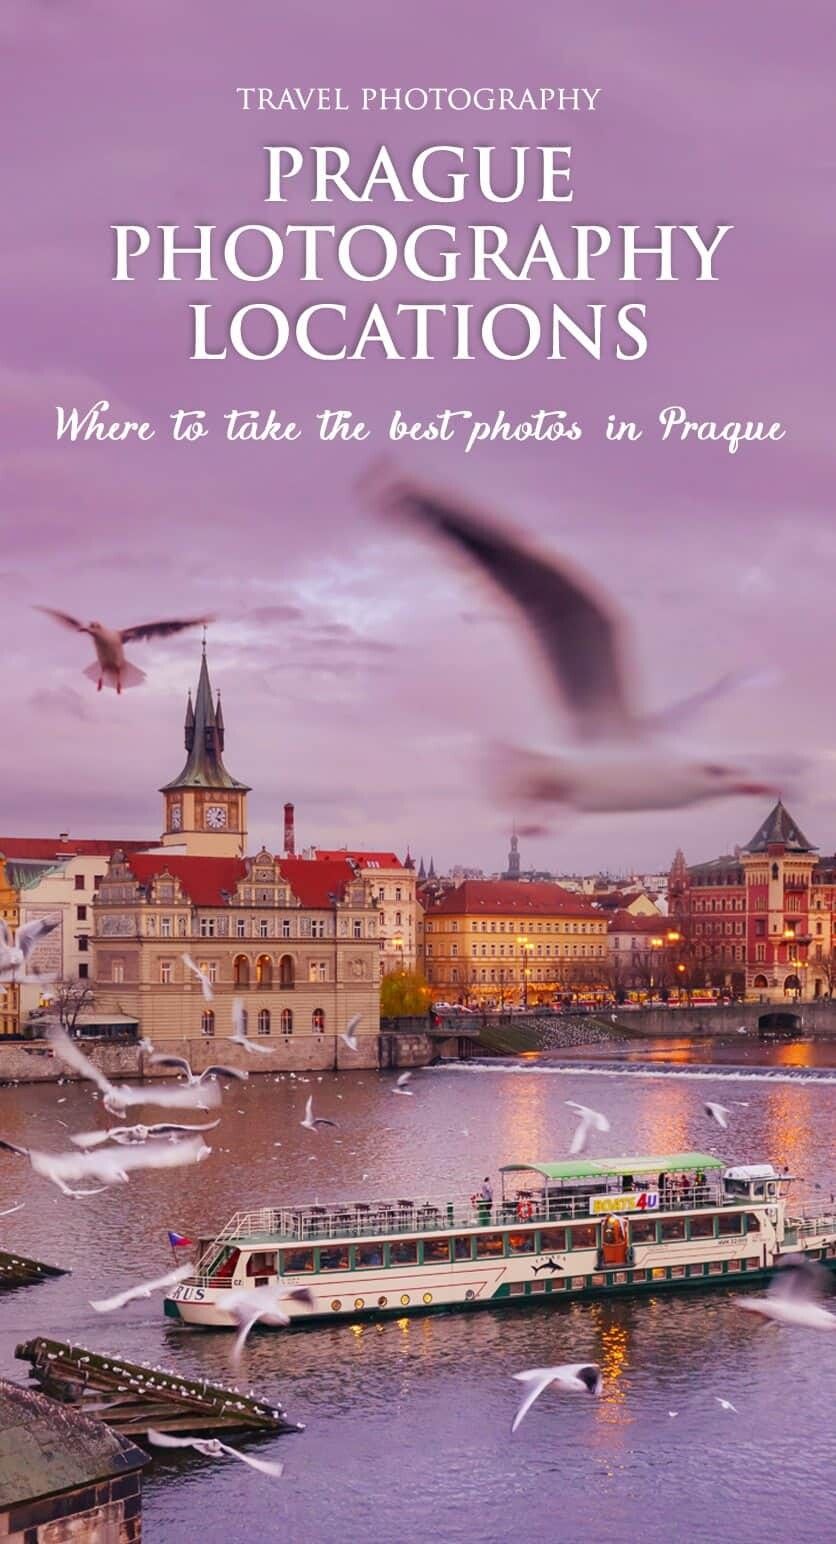 Prague Photography Locations by The Wandering Lens - Your guide to the best photo locations in Prague.